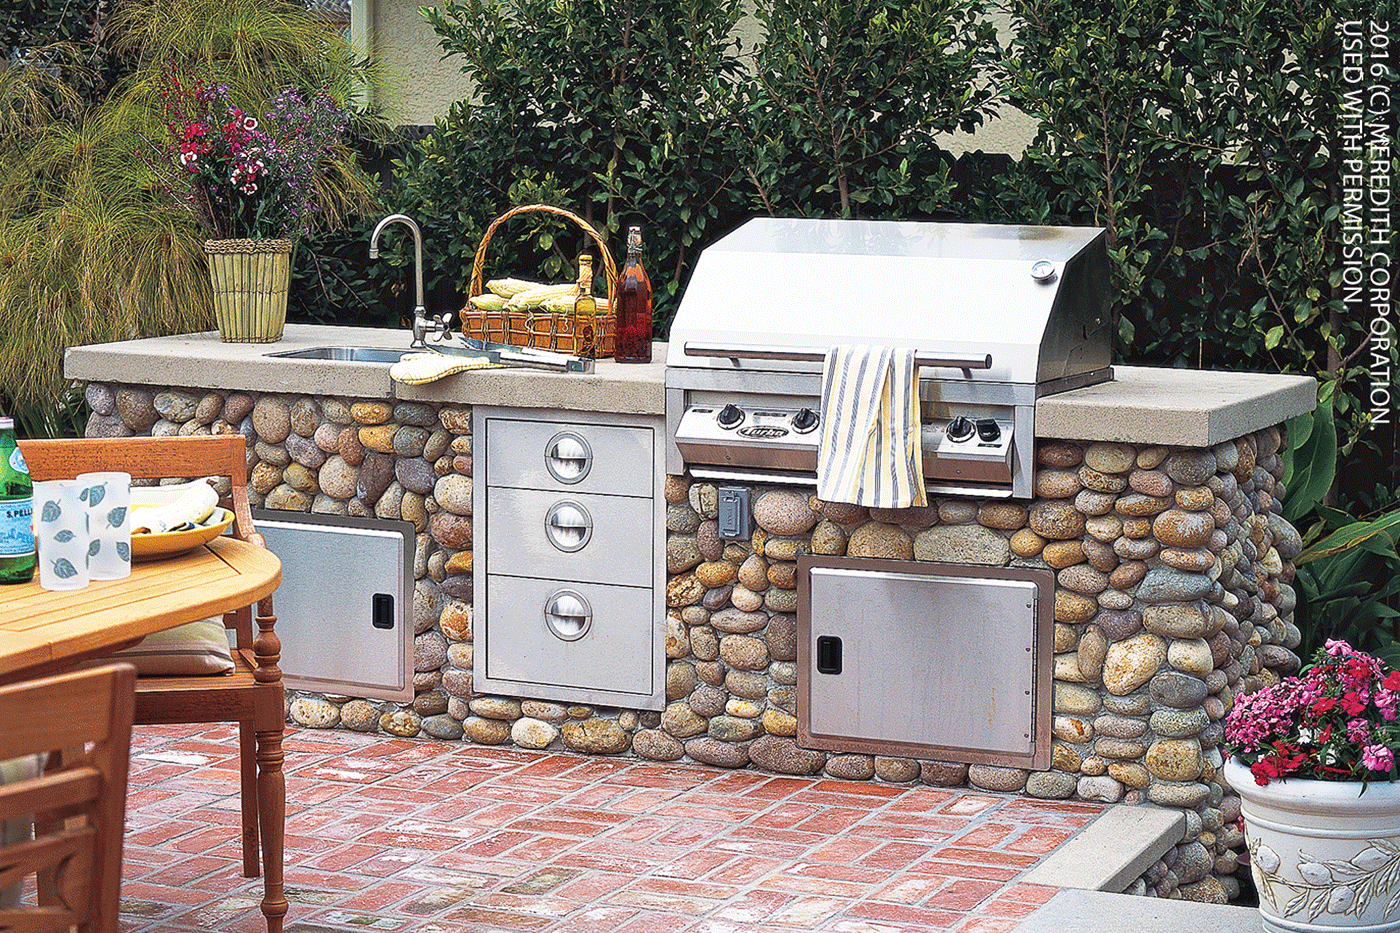 Better homes and gardens outdoor kitchen planning for an for Home and garden kitchen design ideas